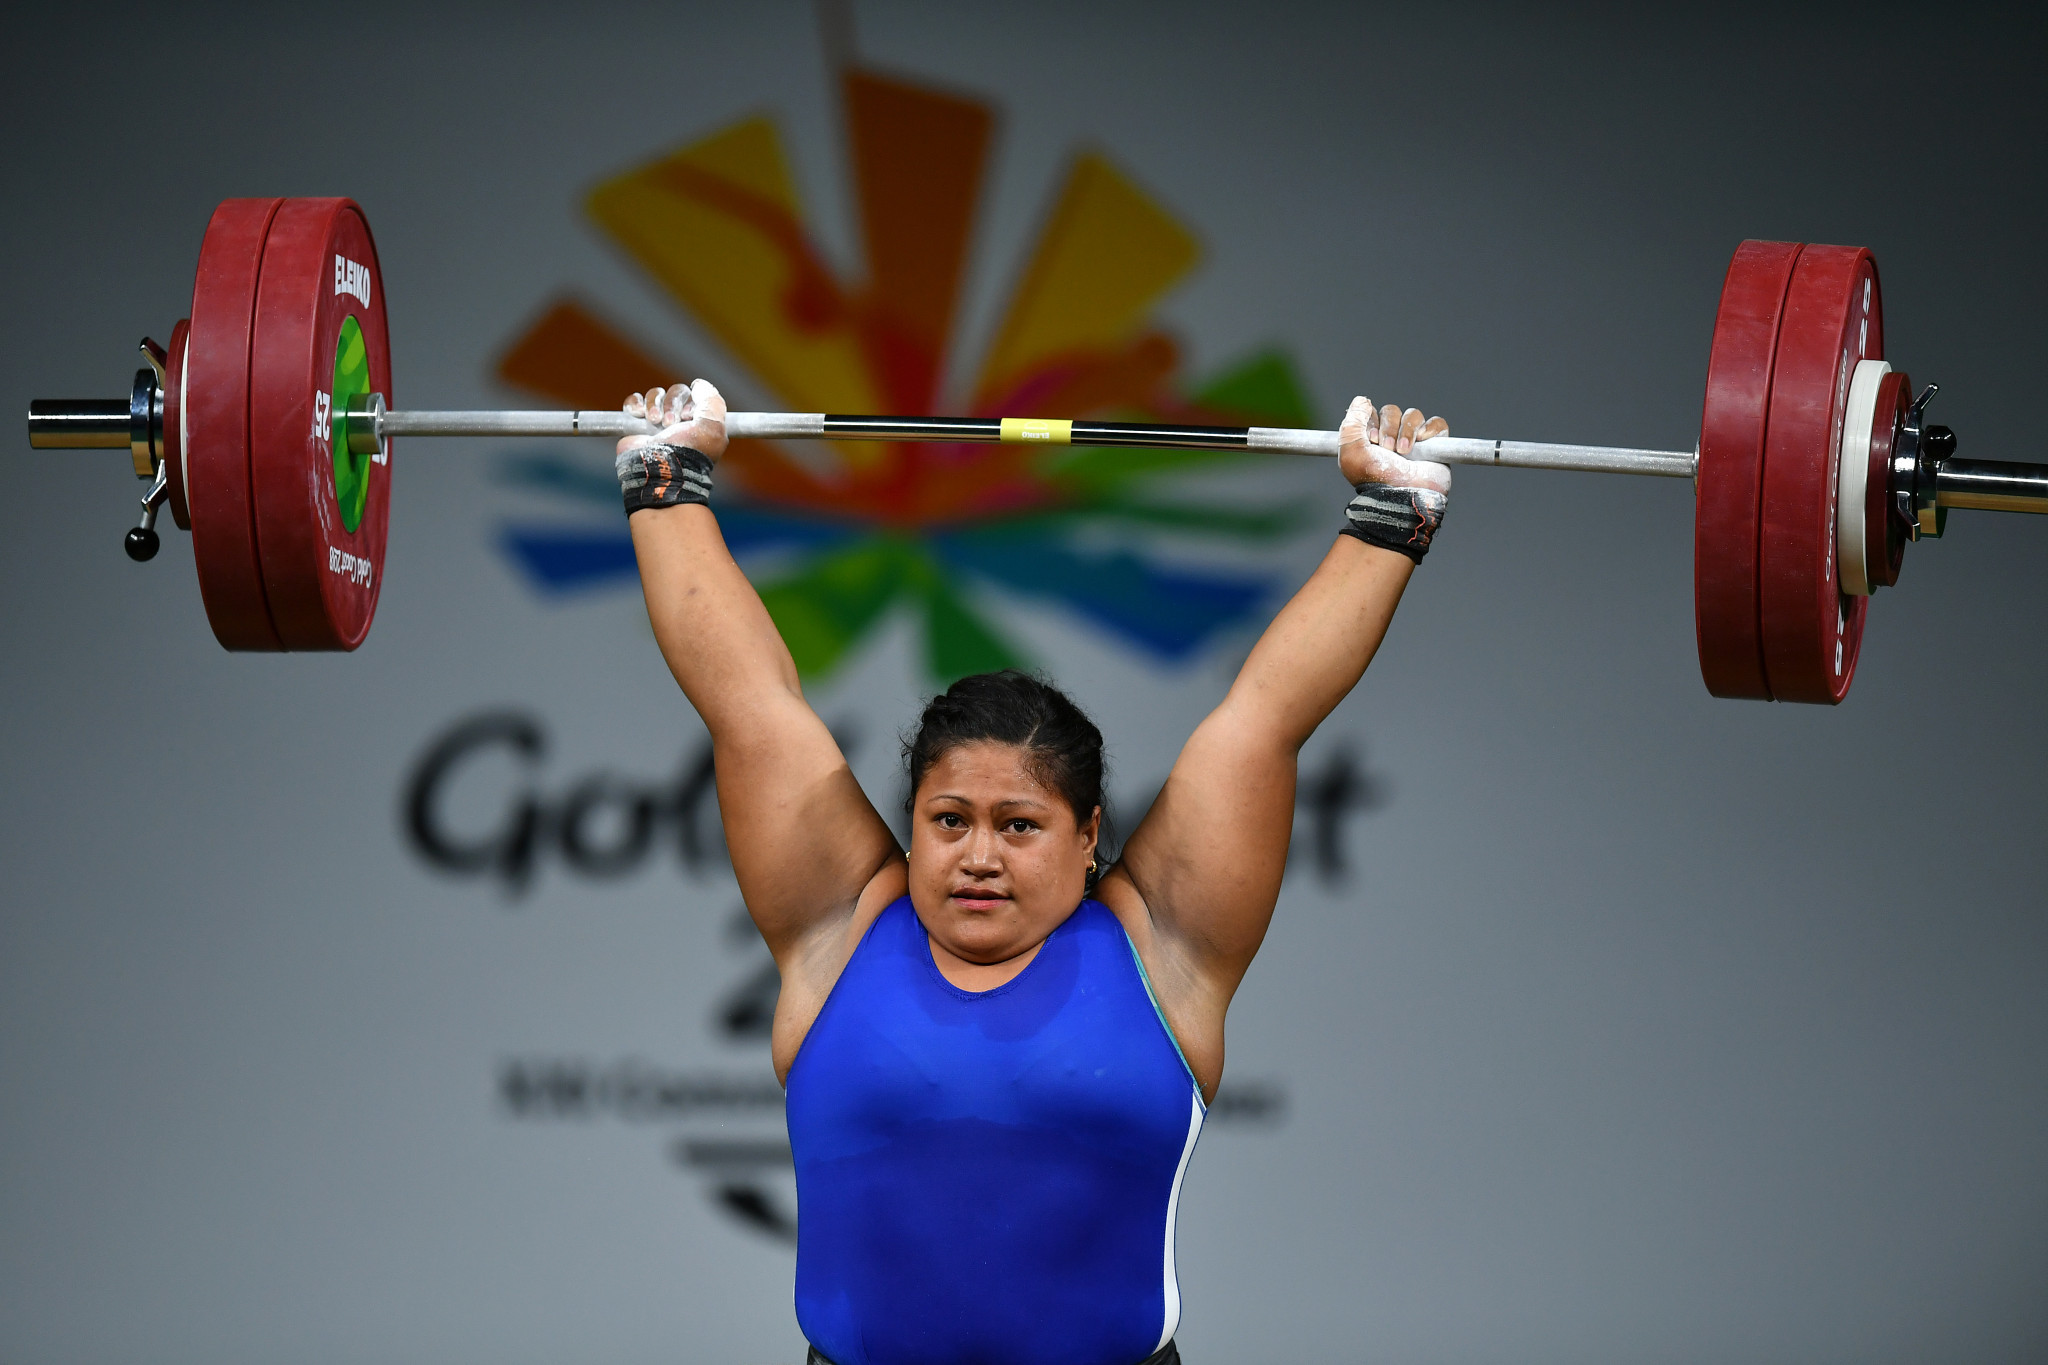 Samoa's Feagaiga Stowers won the women's over 90 kilograms weightlifting event at the Gold Coast 2018 Commonwealth Games today ©Getty Images